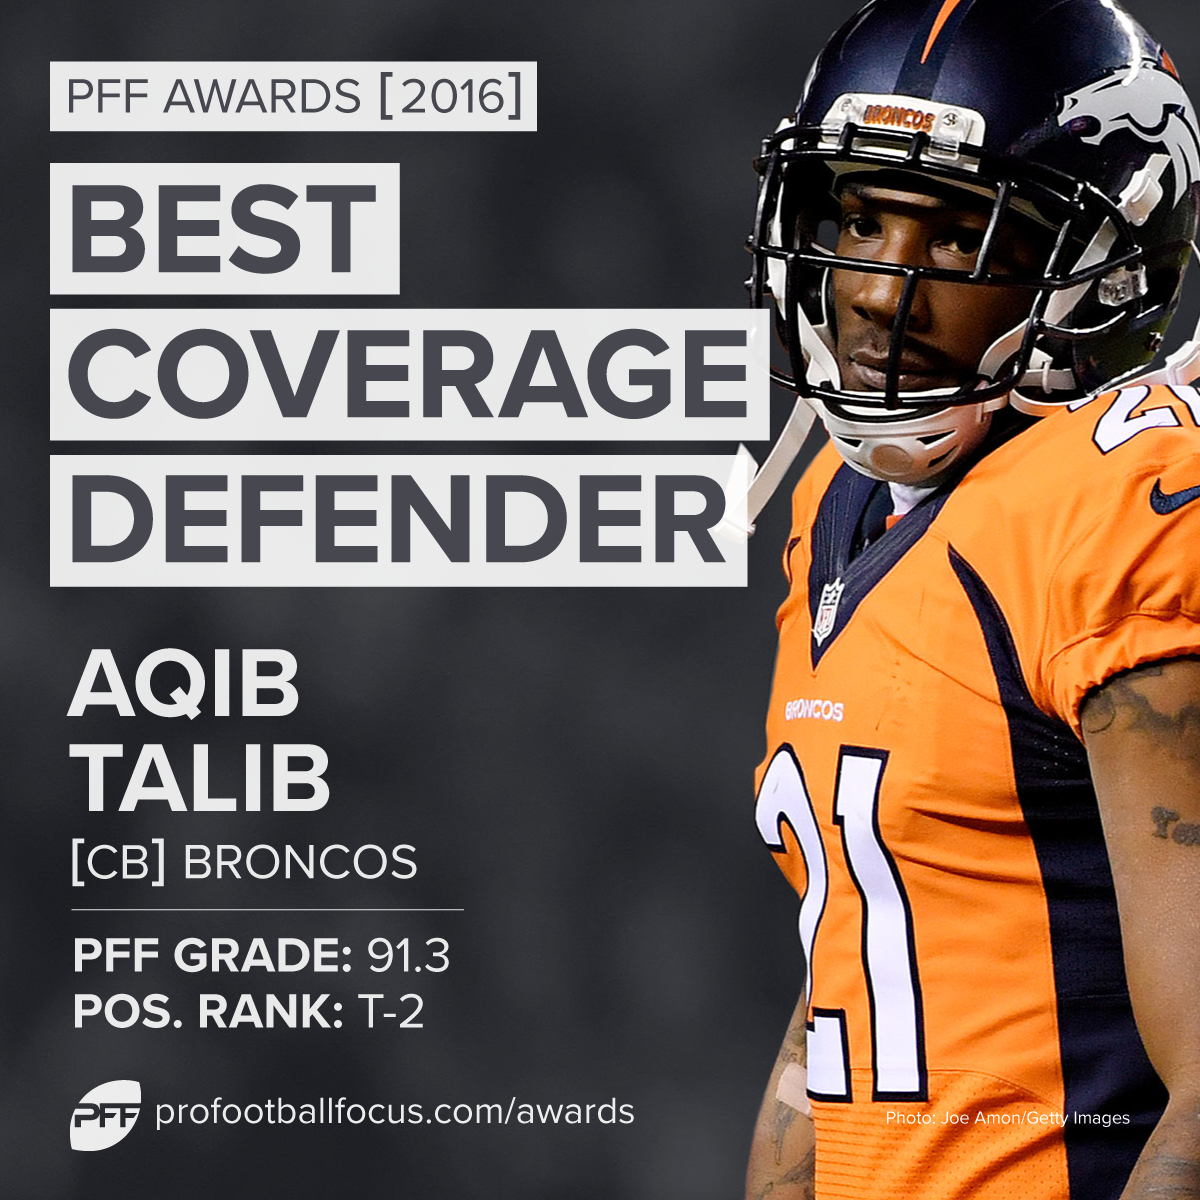 PFF 2016 Best Coverage Defender: Aqib Talib